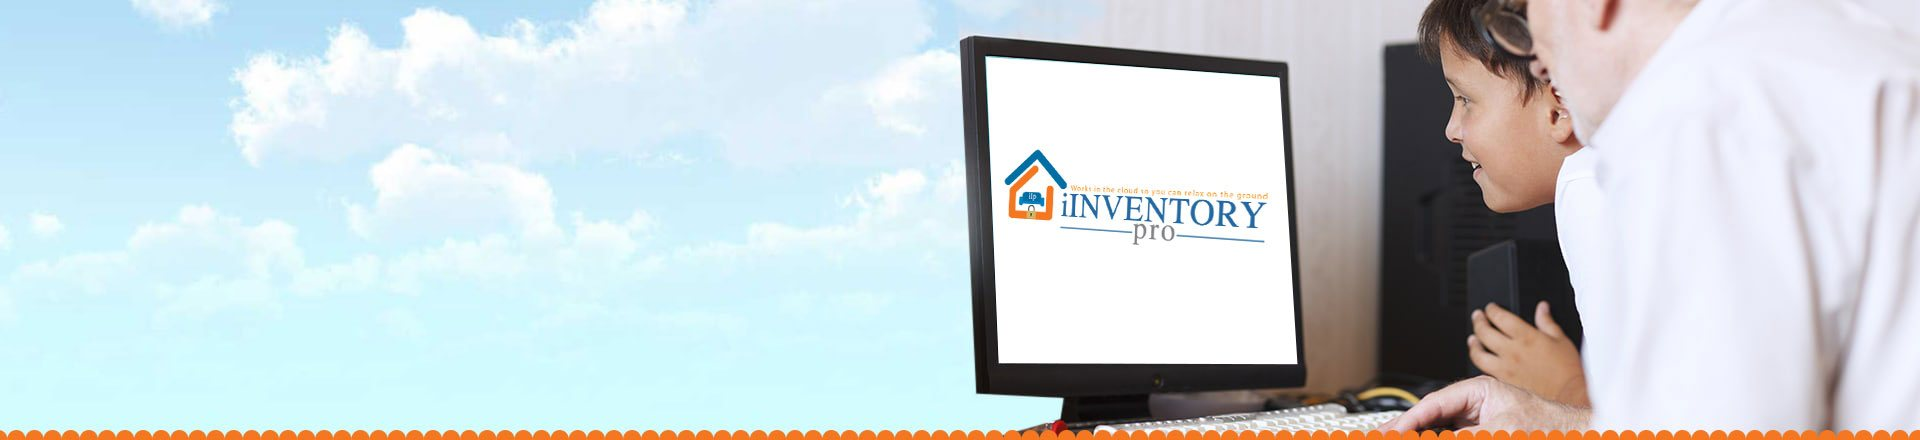 online inventory system, inventory management, property management, personal property, inventory, business,, software, property insurance, inventory, inventory management, emergency preparedness, claim reimbursement, legal documentation, property loss, home inventory , personal property